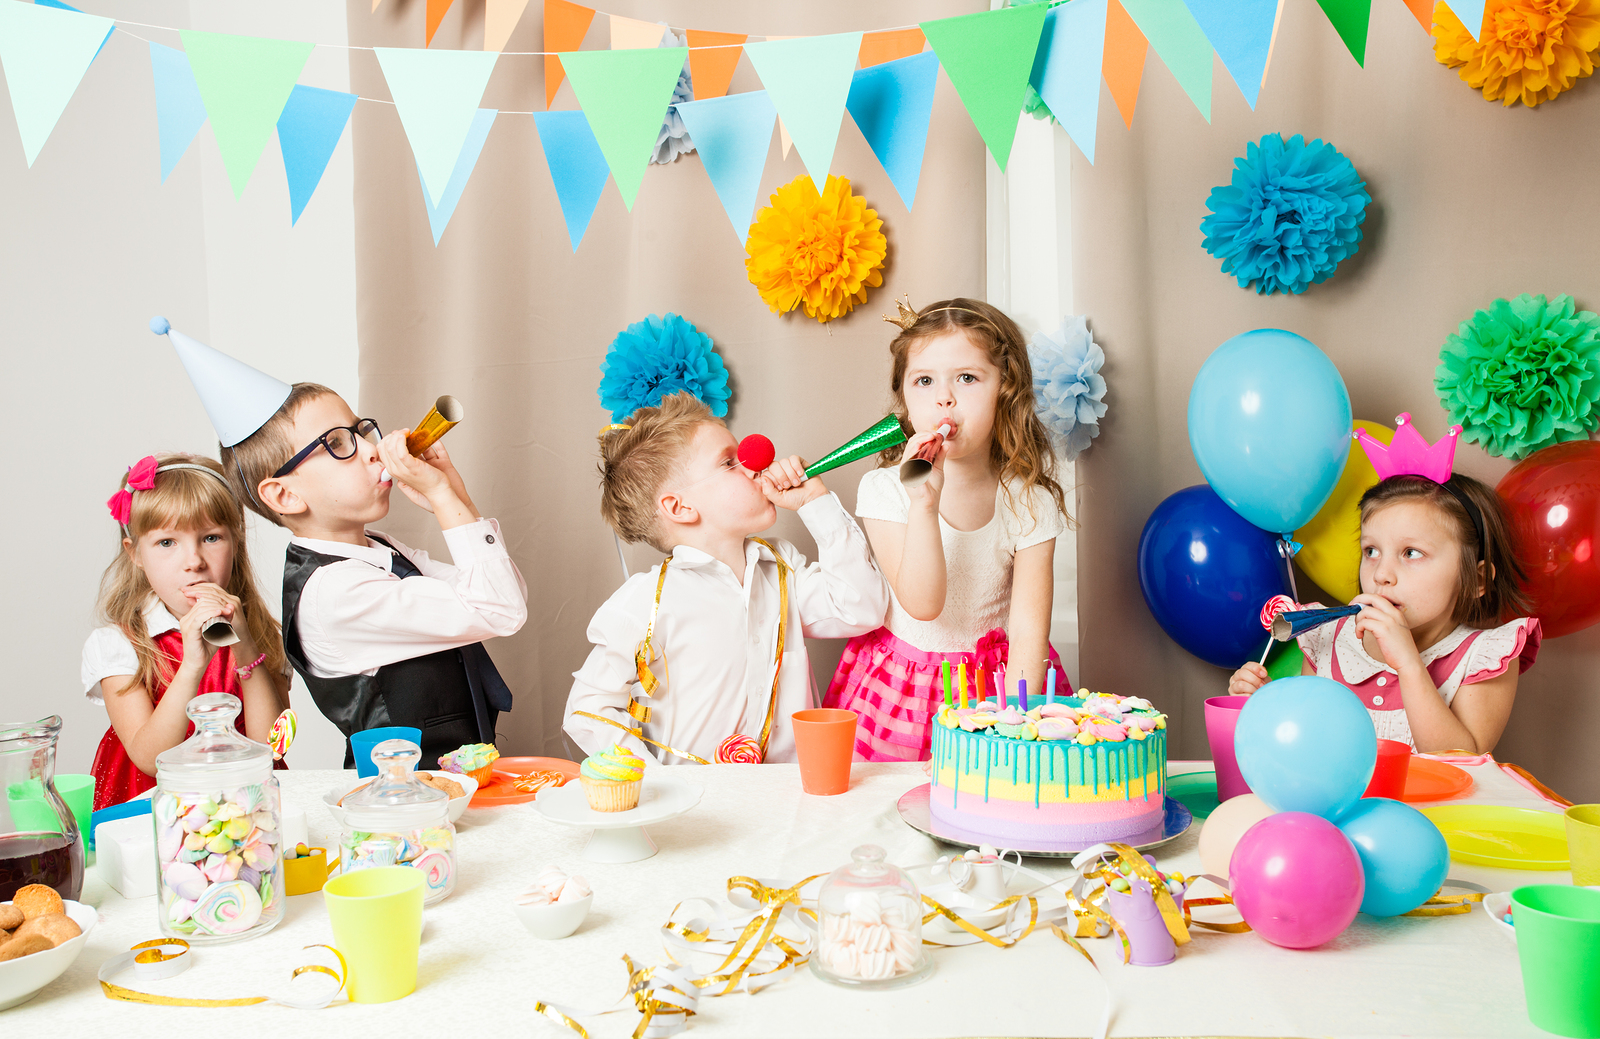 Happy birthday, kids party, celebration, HBD, party at home, where to buy birthday cake in Saigon, where to buy birthday cake in Ho Chi Minh, hurray, presents, goody bags, the best entertainment in Saigon, festive, kids, candkes on the cake, blowing out the cake, balloons, bunting flags